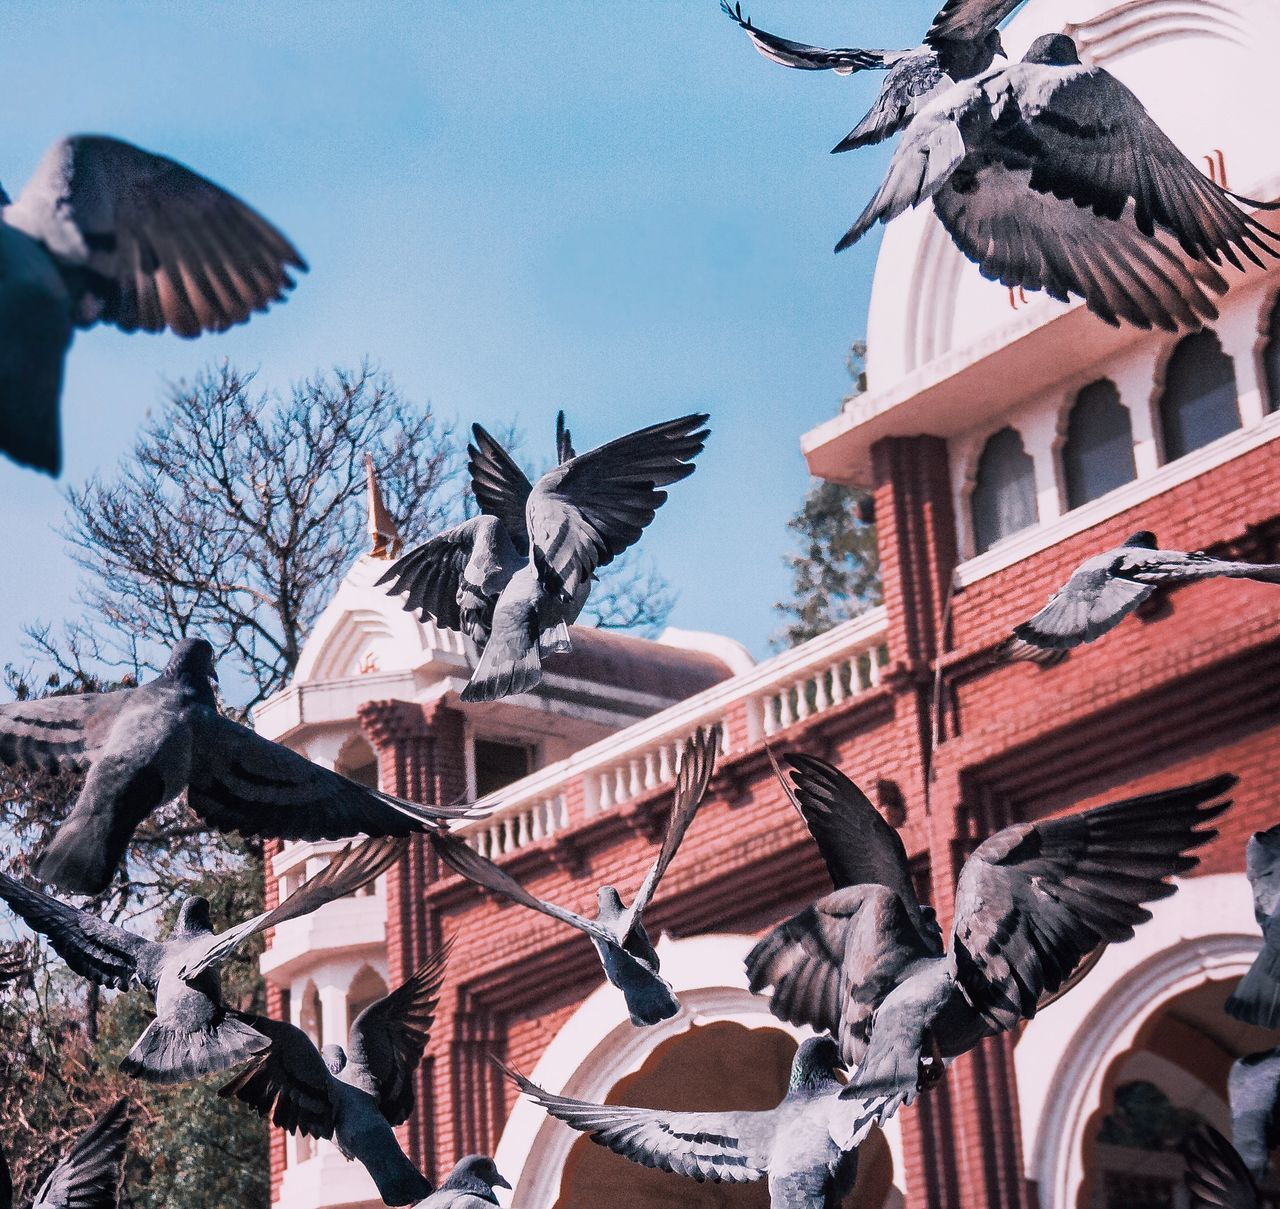 Bird Animals In The Wild Animal Themes Flying Spread Wings Flock Of Birds Animal Wildlife Low Angle View Outdoors Day Sky Nature No People Large Group Of Animals Architecture Vulture Pelican Bird Of Prey Resist Pigeon India Culture EyeEmNewHere Break The Mold Art Is Everywhere TCPM